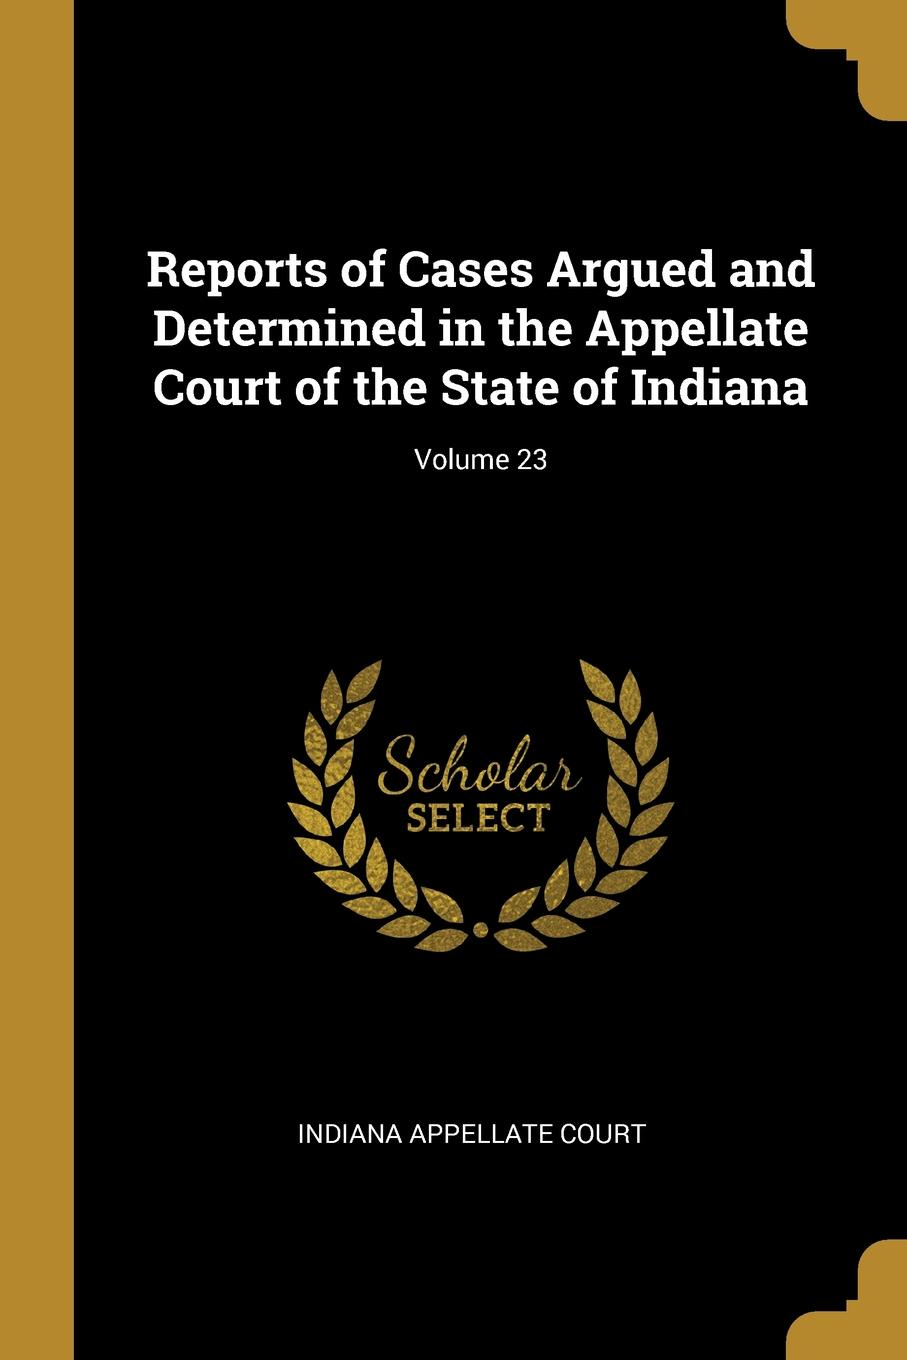 Indiana Appellate Court Reports of Cases Argued and Determined in the Appellate Court of the State of Indiana; Volume 23